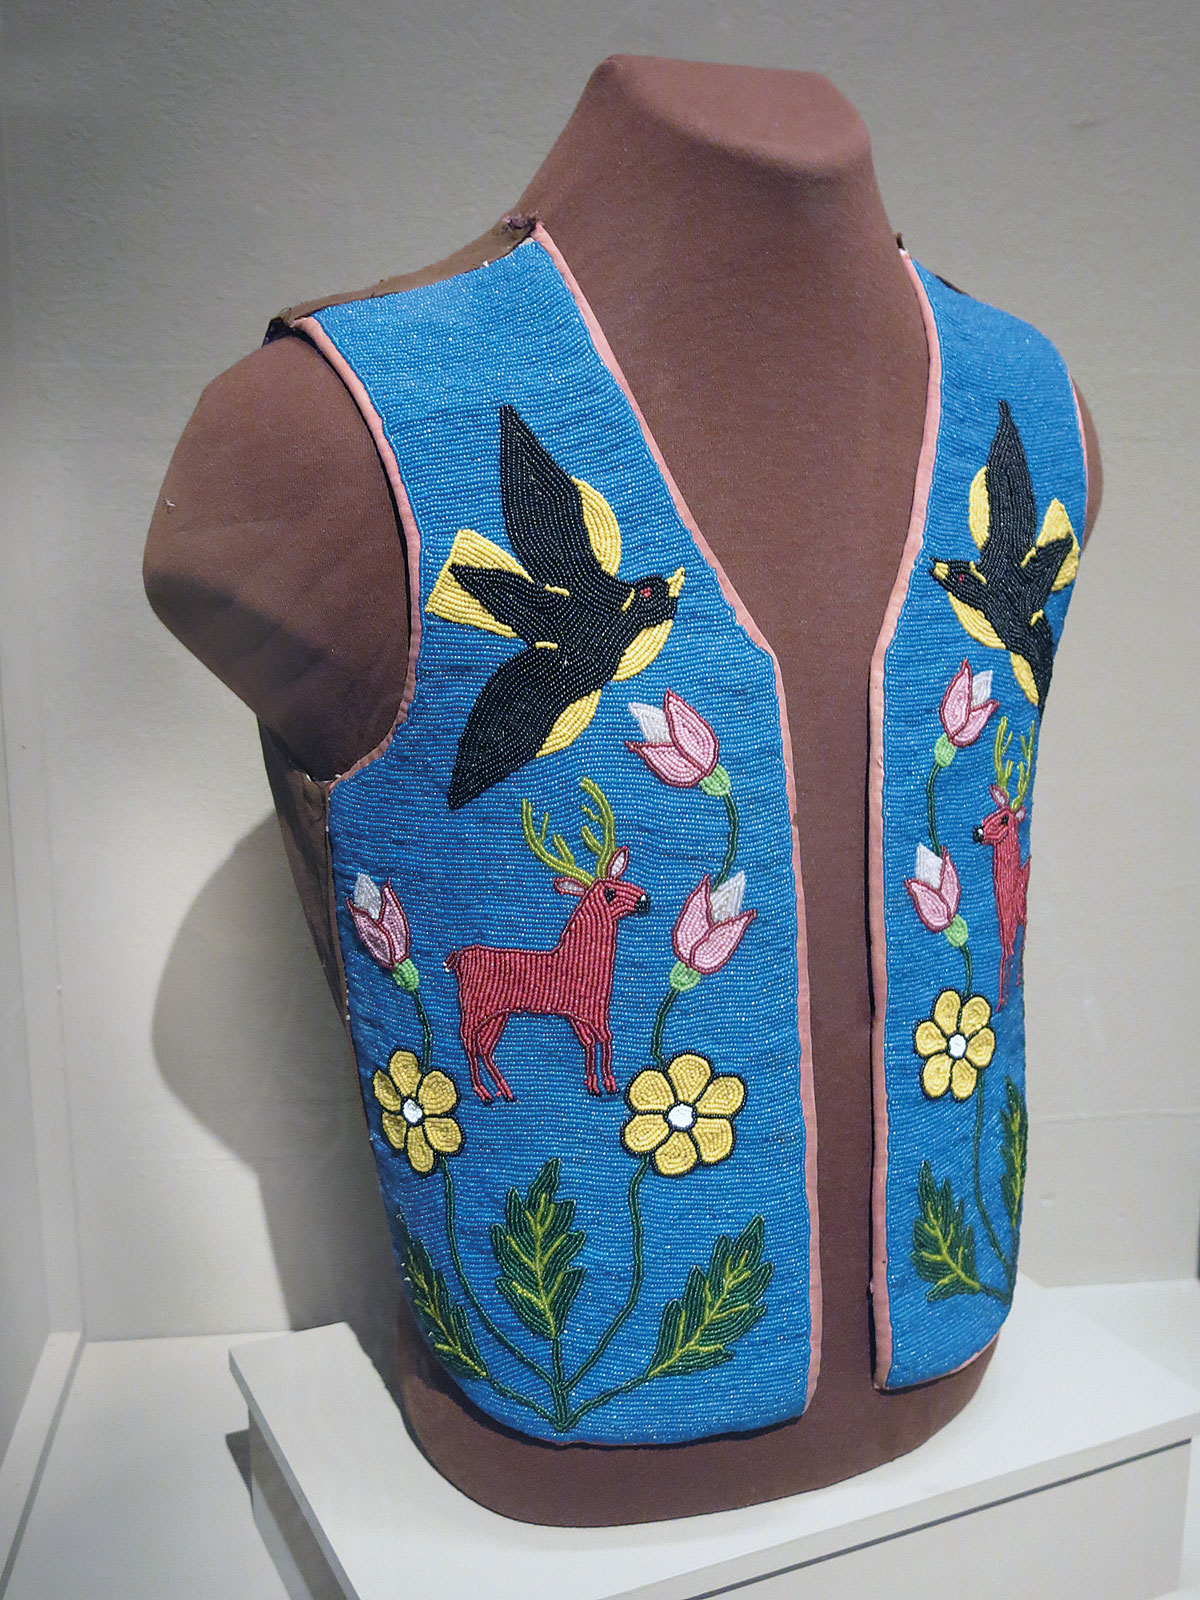 VEST by Plateau artist, 50.8 x 40.6 centimeters, circa 1900. The beads have been sewn onto commercial cotton fabric.  Private collection. Photograph by Ornament.